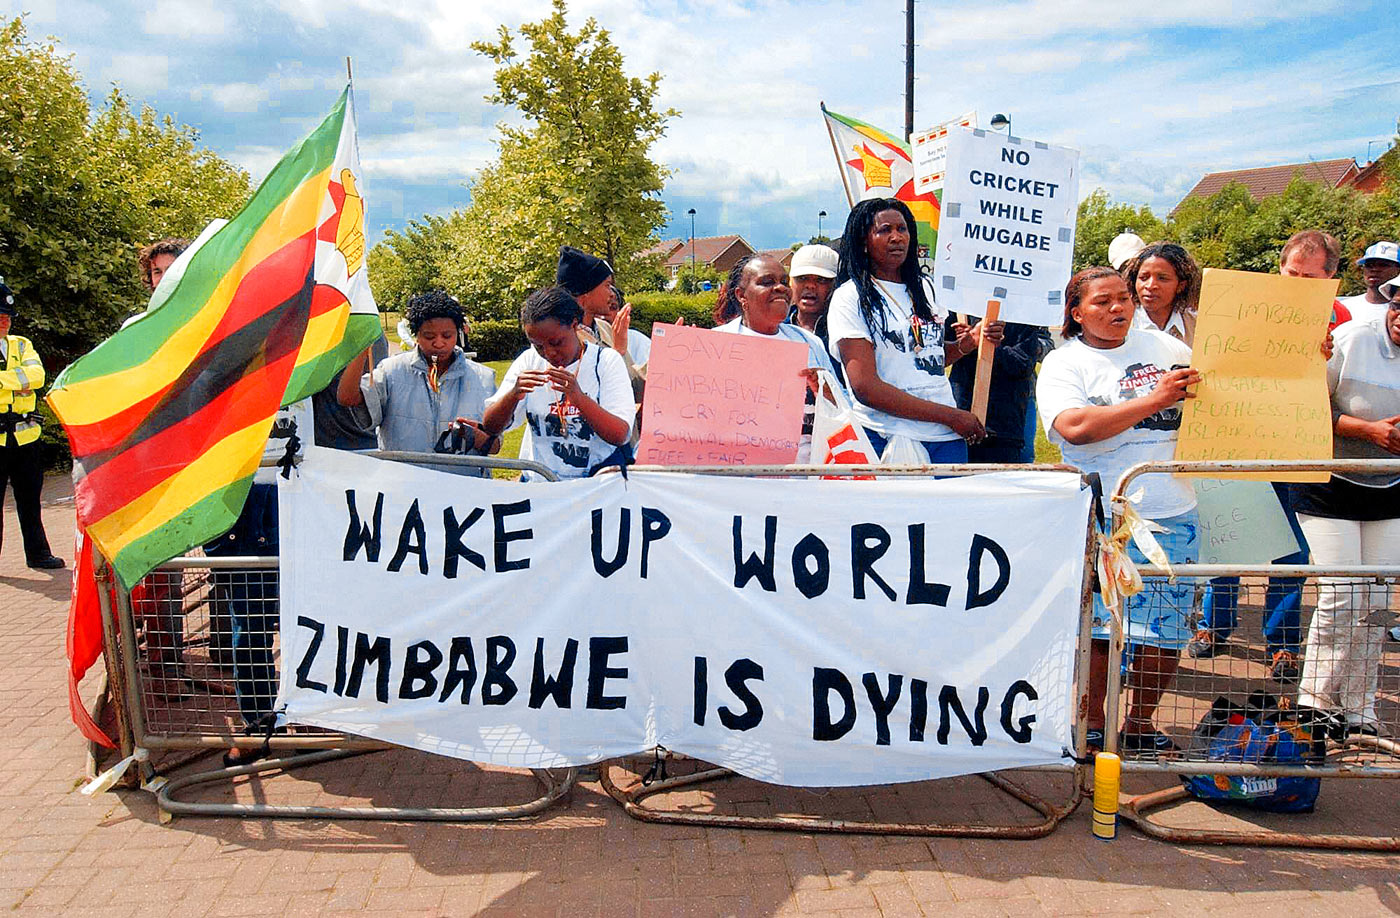 Protesters call attention to the political situation in Zimbabwe during the team's Test in Durham in 2003